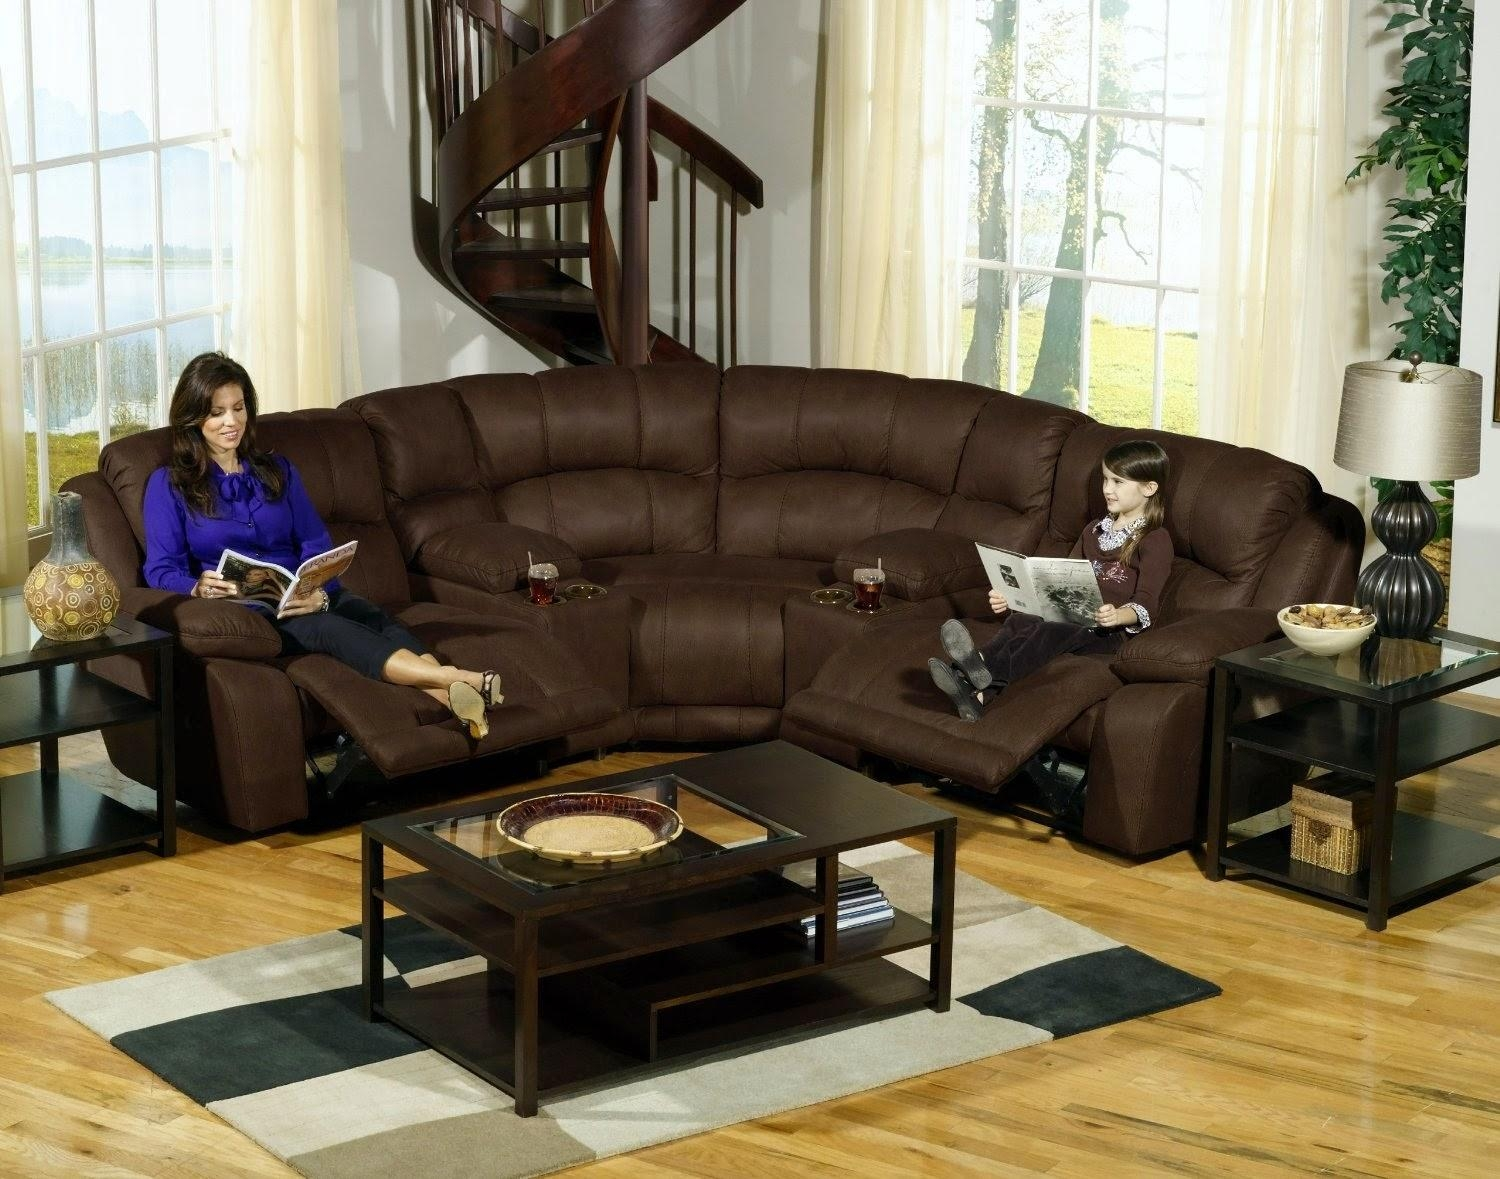 Sofas Center : Best Rated Power Recliner Sectional Sofa Reclining Inside Curved Sectional Sofa With Recliner (Image 15 of 15)